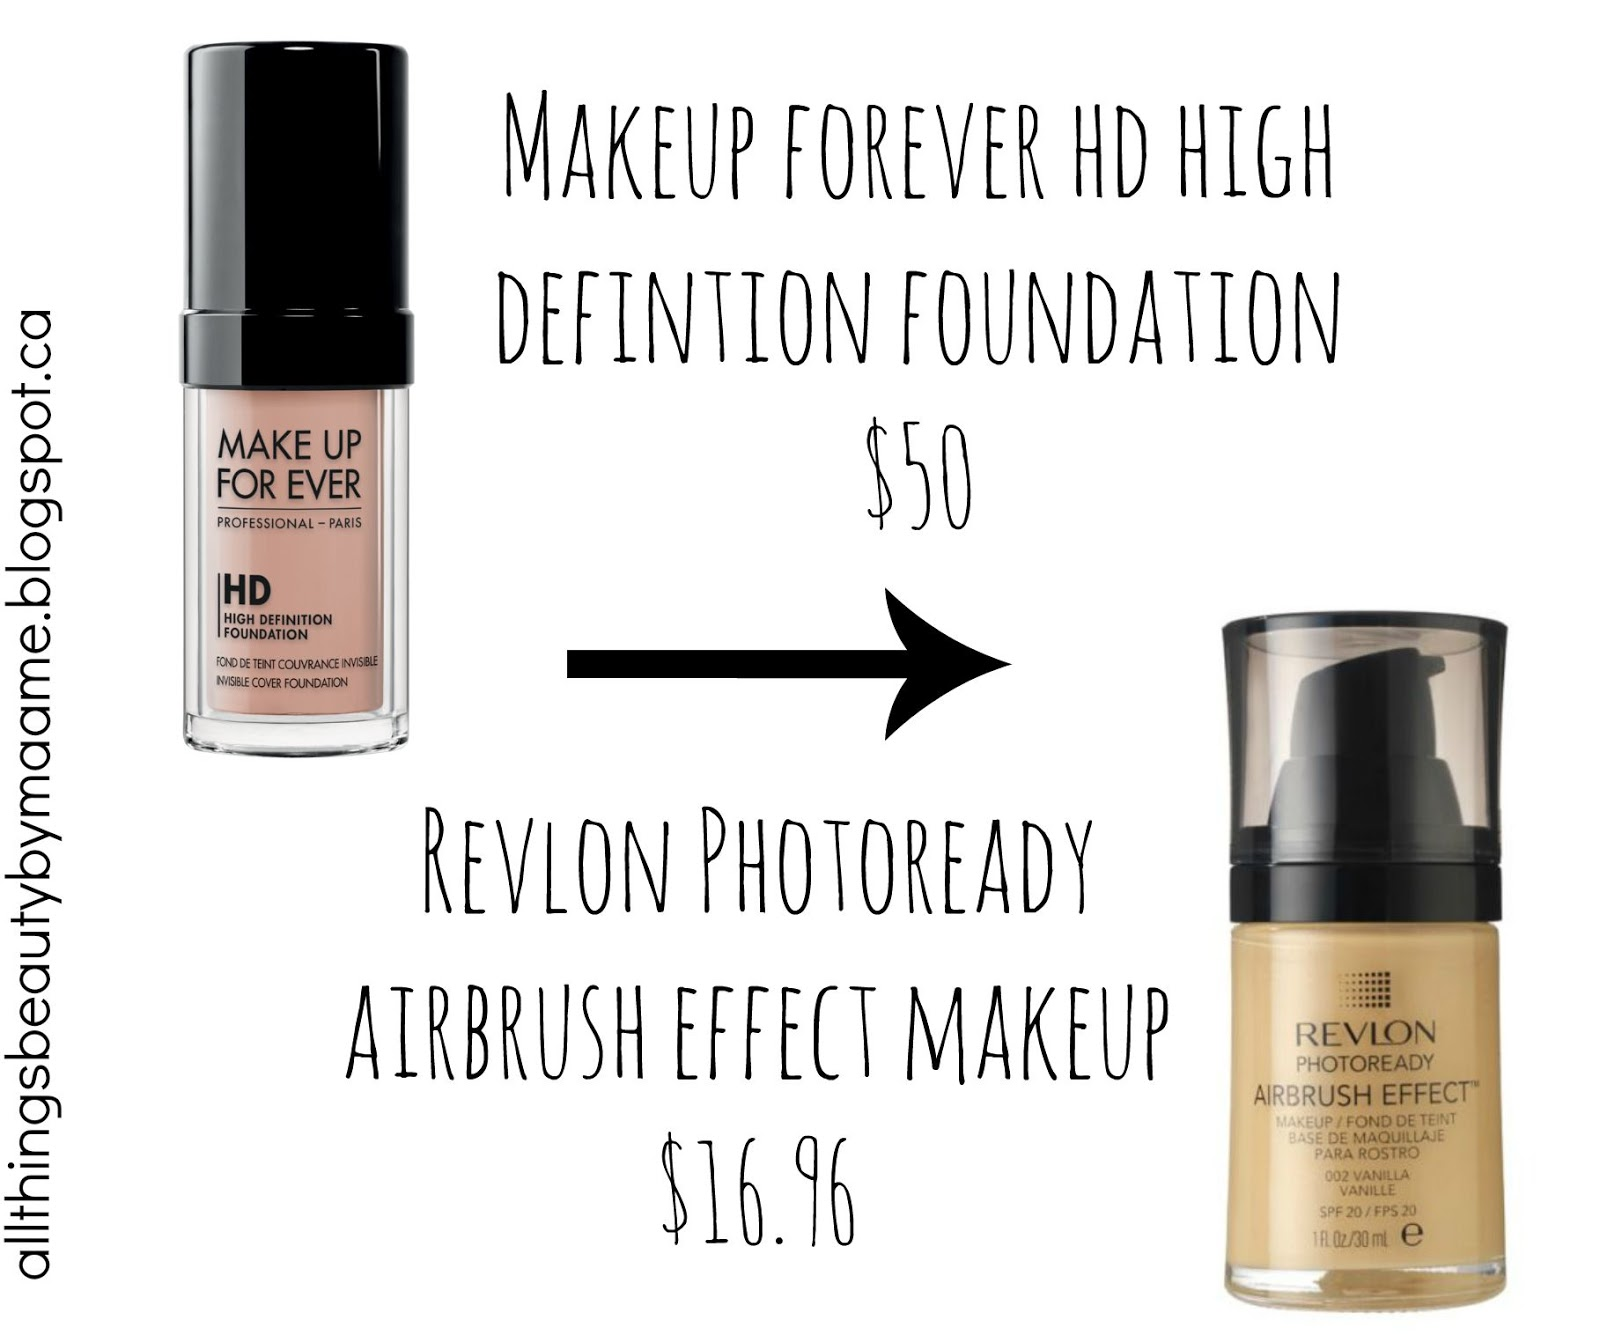 Do You Have Foundation Dupes Don T Forget To Share 1 D And Comment Below